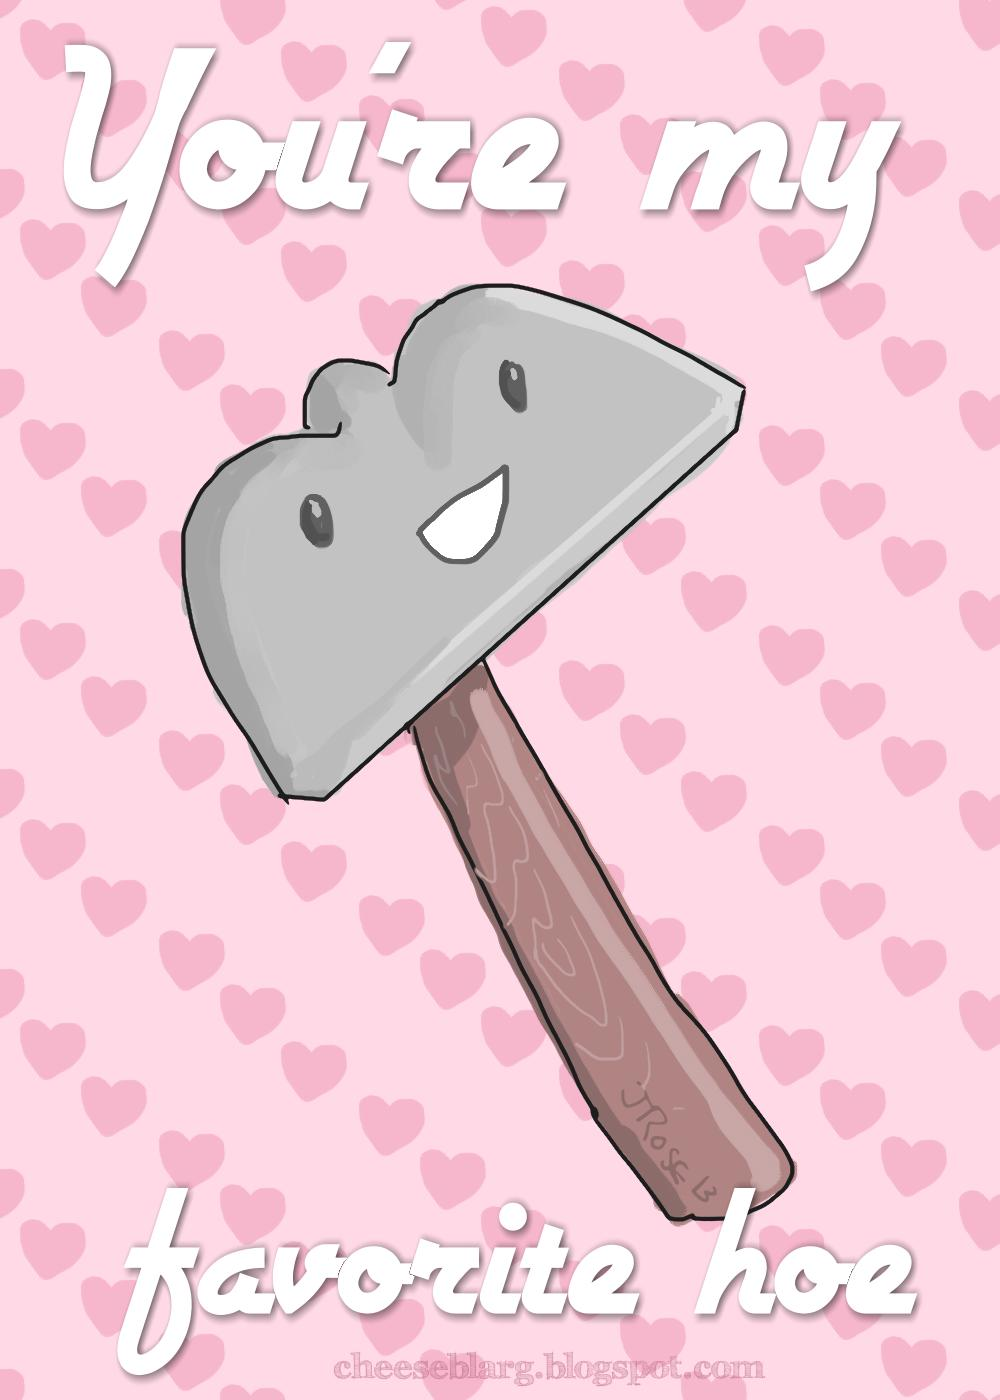 22 Funny Valentines Day Cards Youd be Lucky to Get – Funny Valentines Day Cards for Your Best Friend